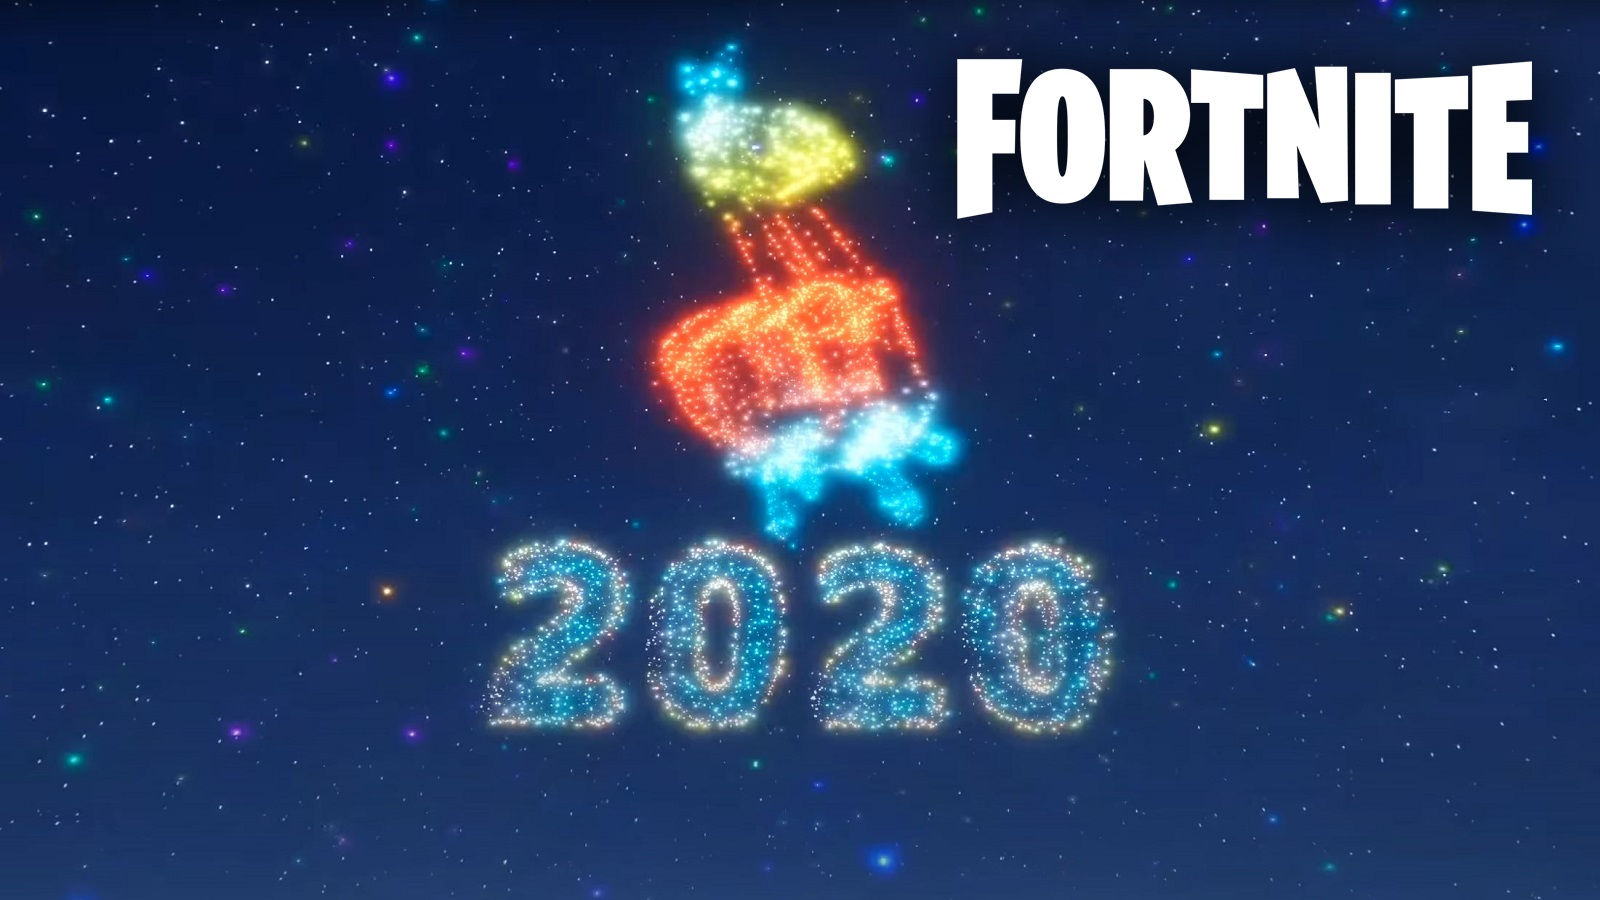 Fortnite 2020 New Years Event With Logo